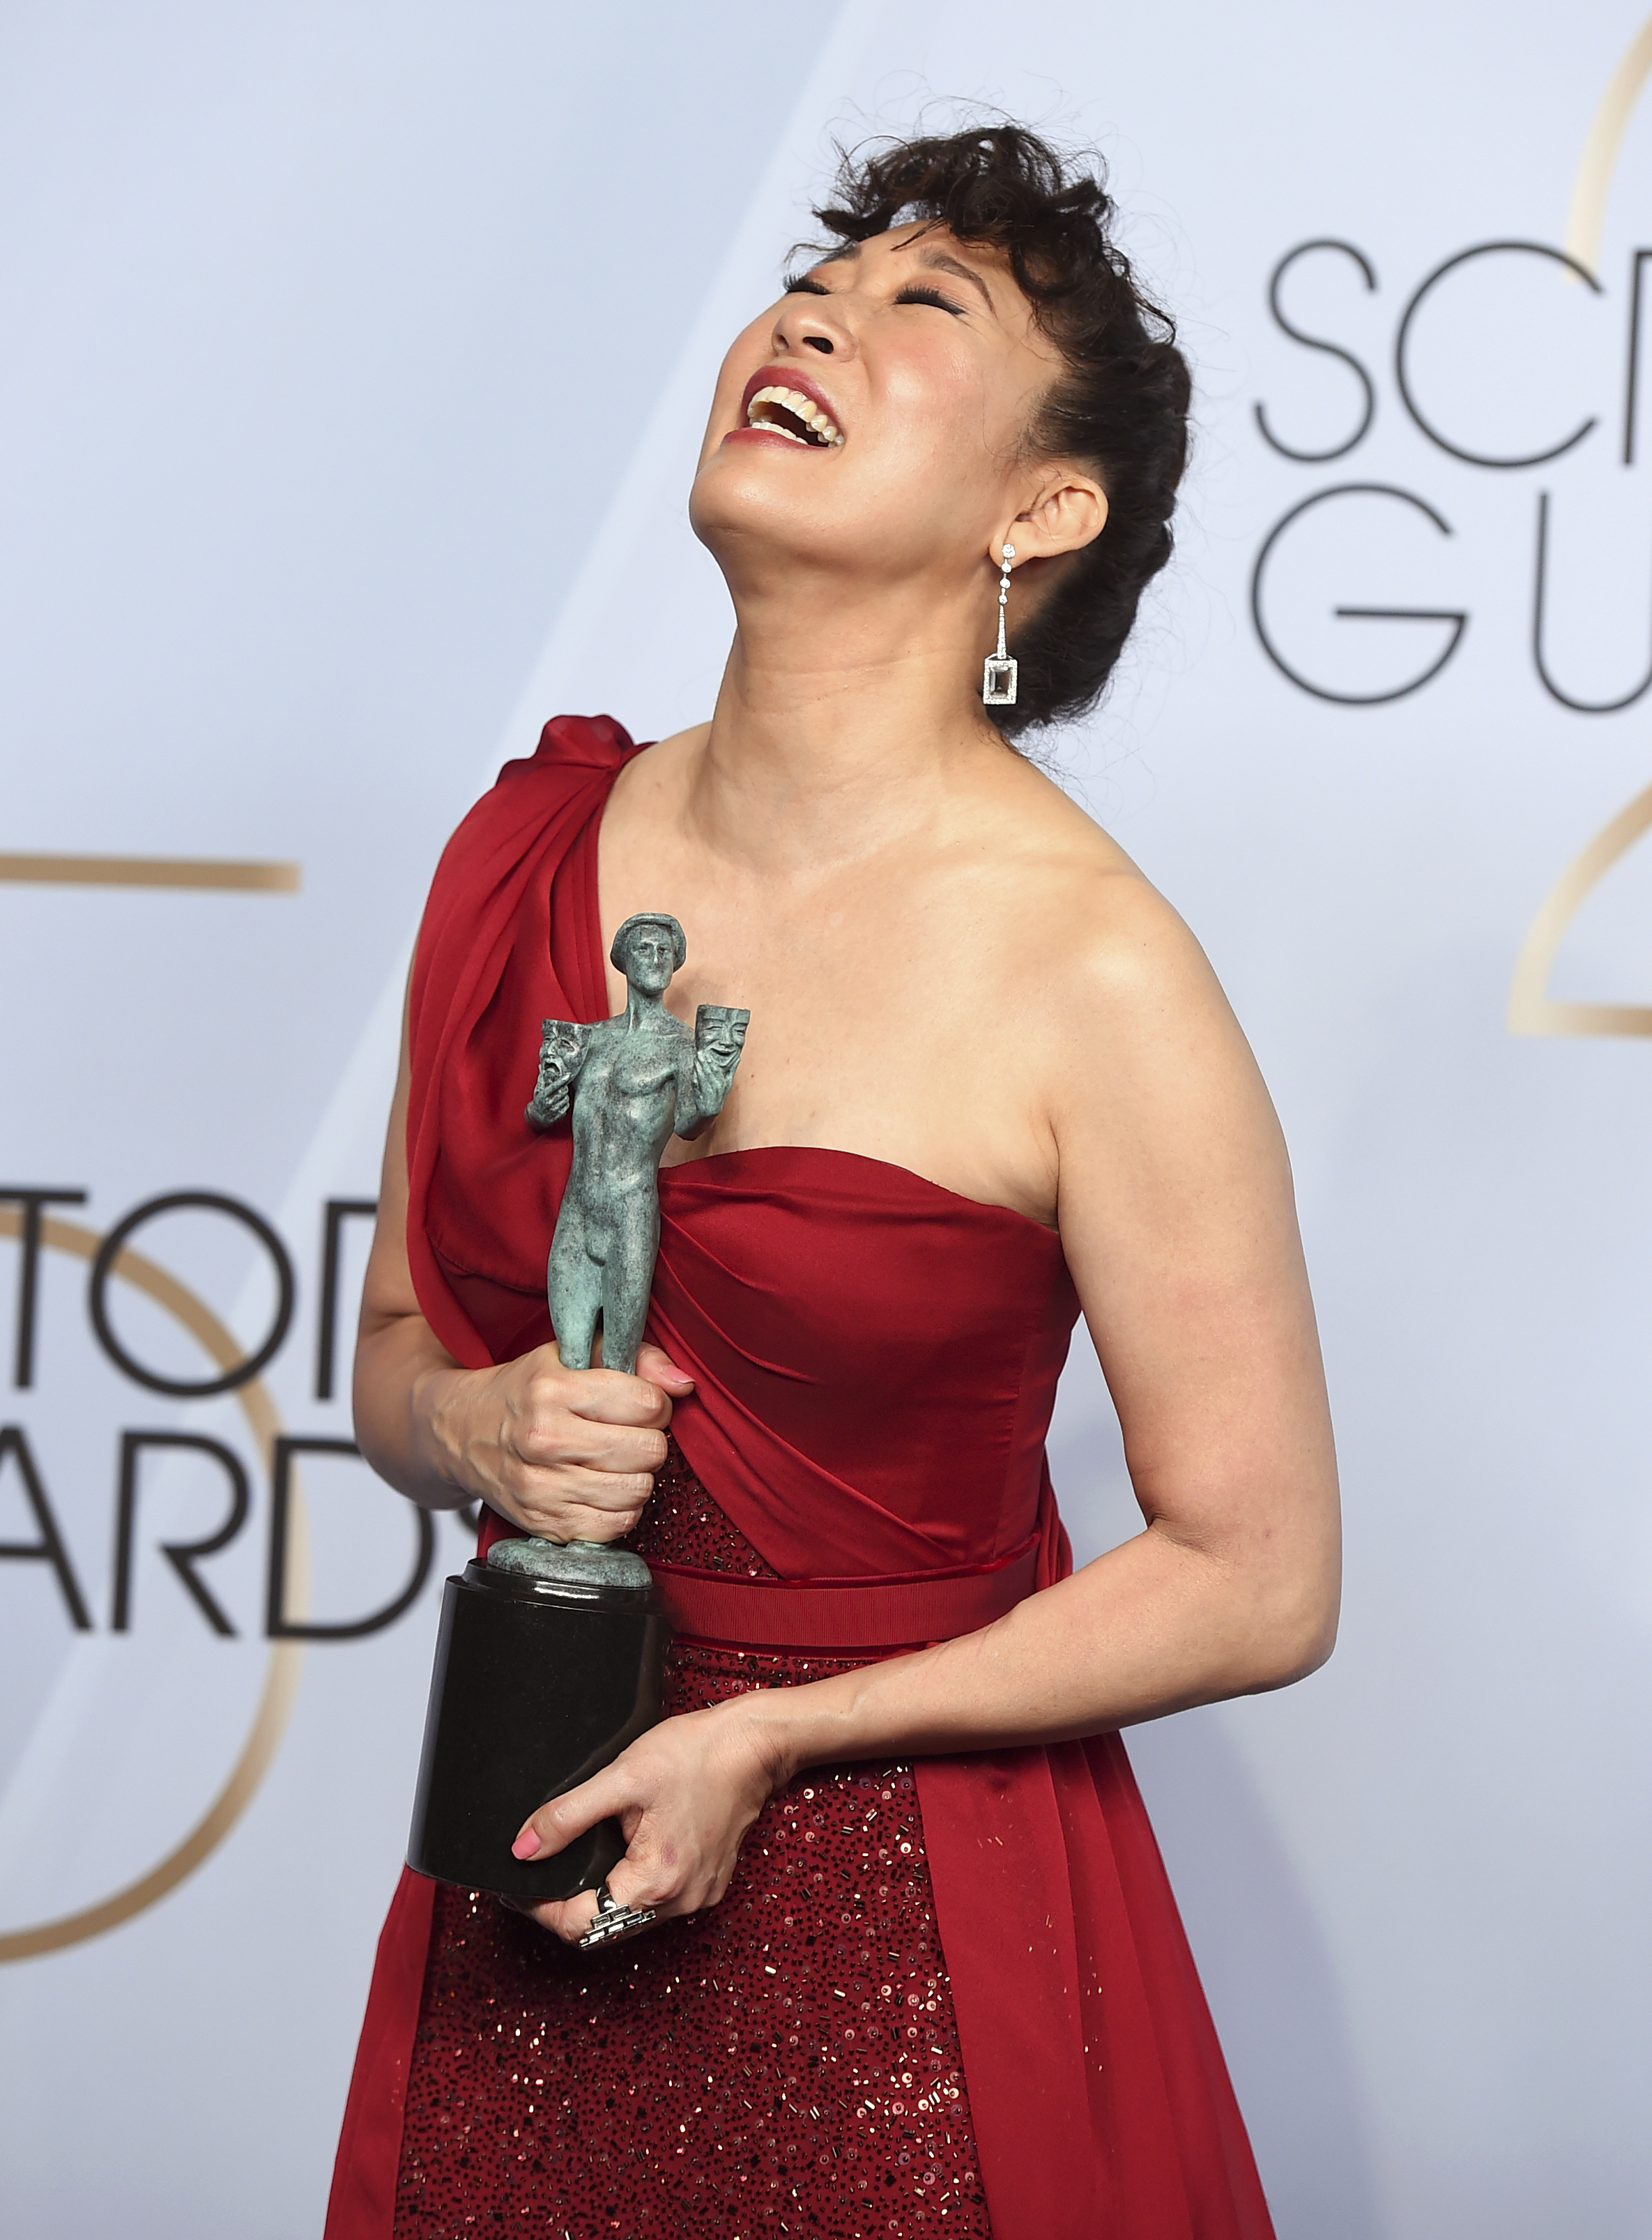 Sandra Oh poses with the award for outstanding performance by a female actor in a drama series for